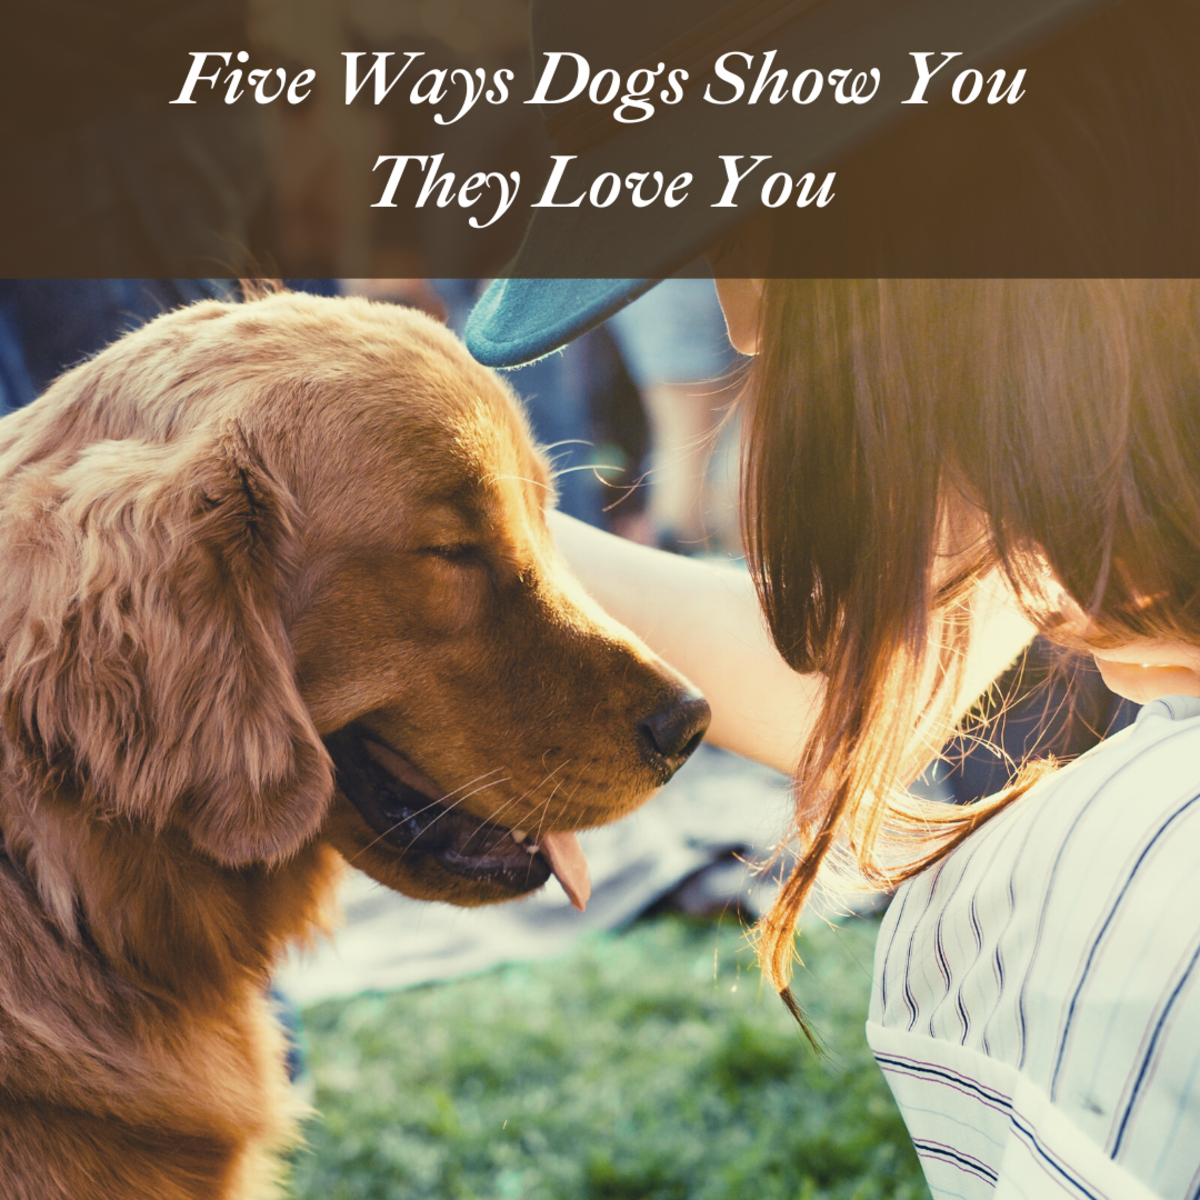 5 Ways Dogs Show Humans Love